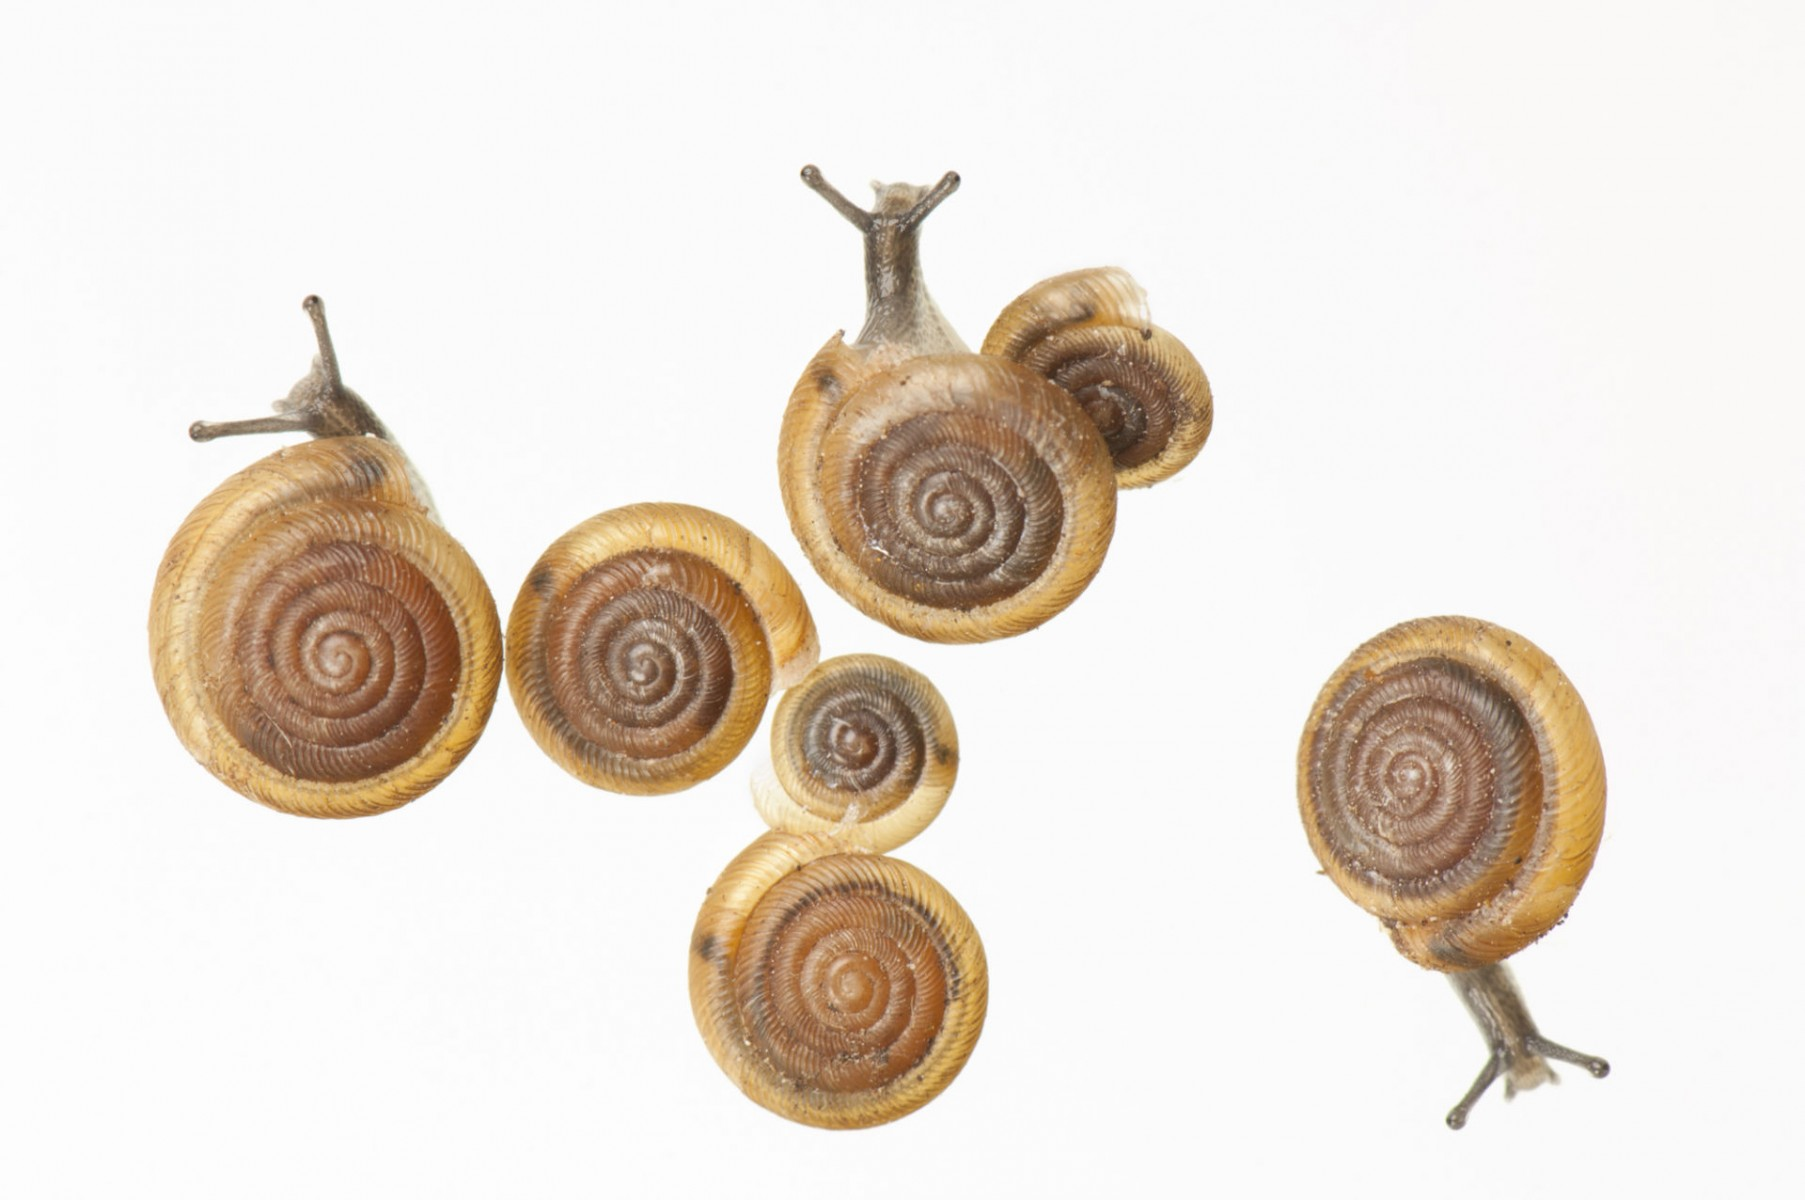 The Iowa Pleistocene snail (Discus macclintocki). This is a relict from the last ice age, some 400,000 years ago. It lives in cold air vents on 37 different hillsides in Iowa (and one in Illinois) and survives only in the cold air that blows past underground ice and out of the cracks in limestone algific talus slopes. (US: Endangered; IUCN: Least Concern)